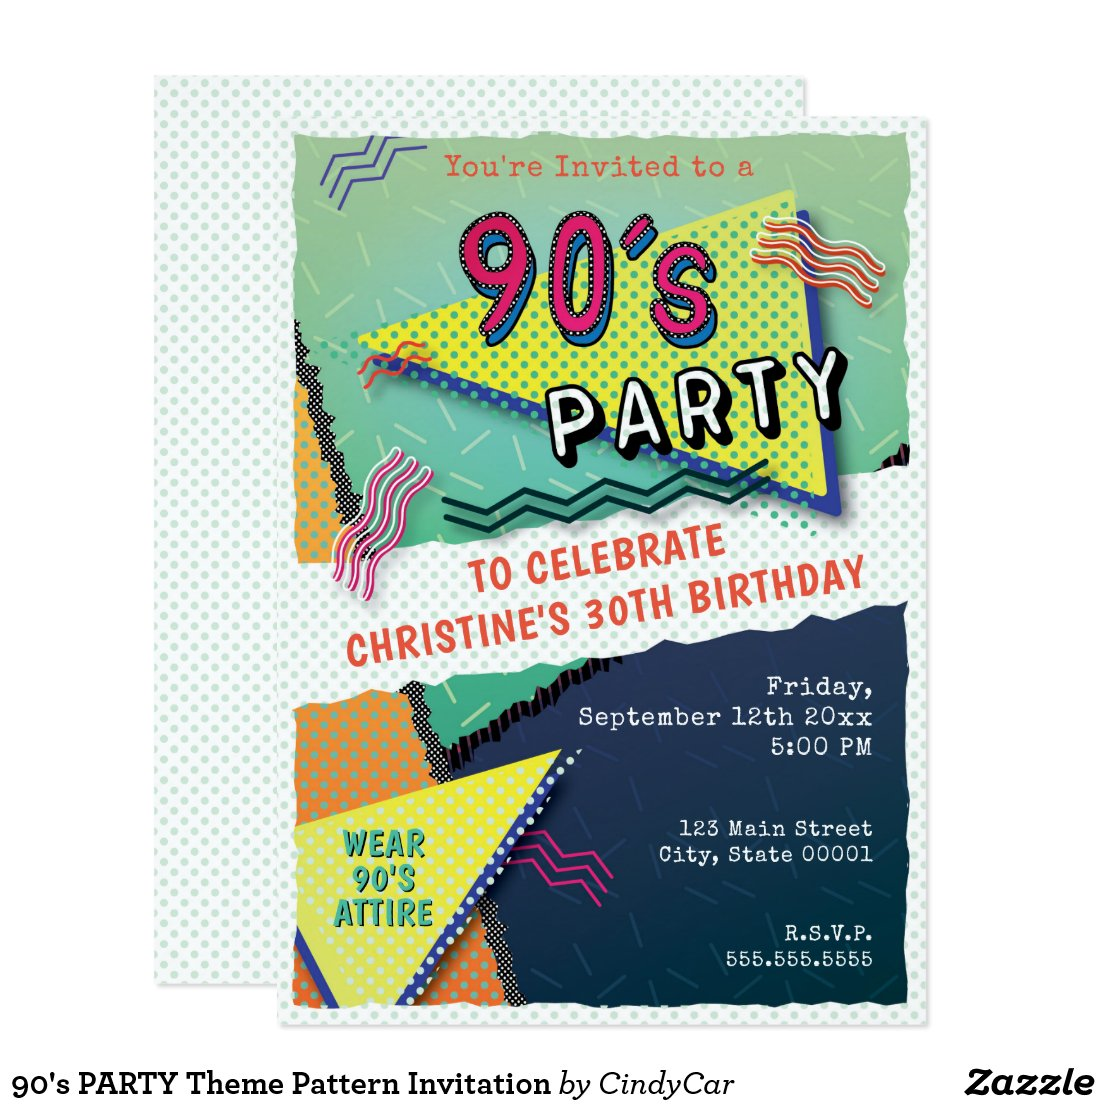 90's PARTY Theme Pattern Invitation